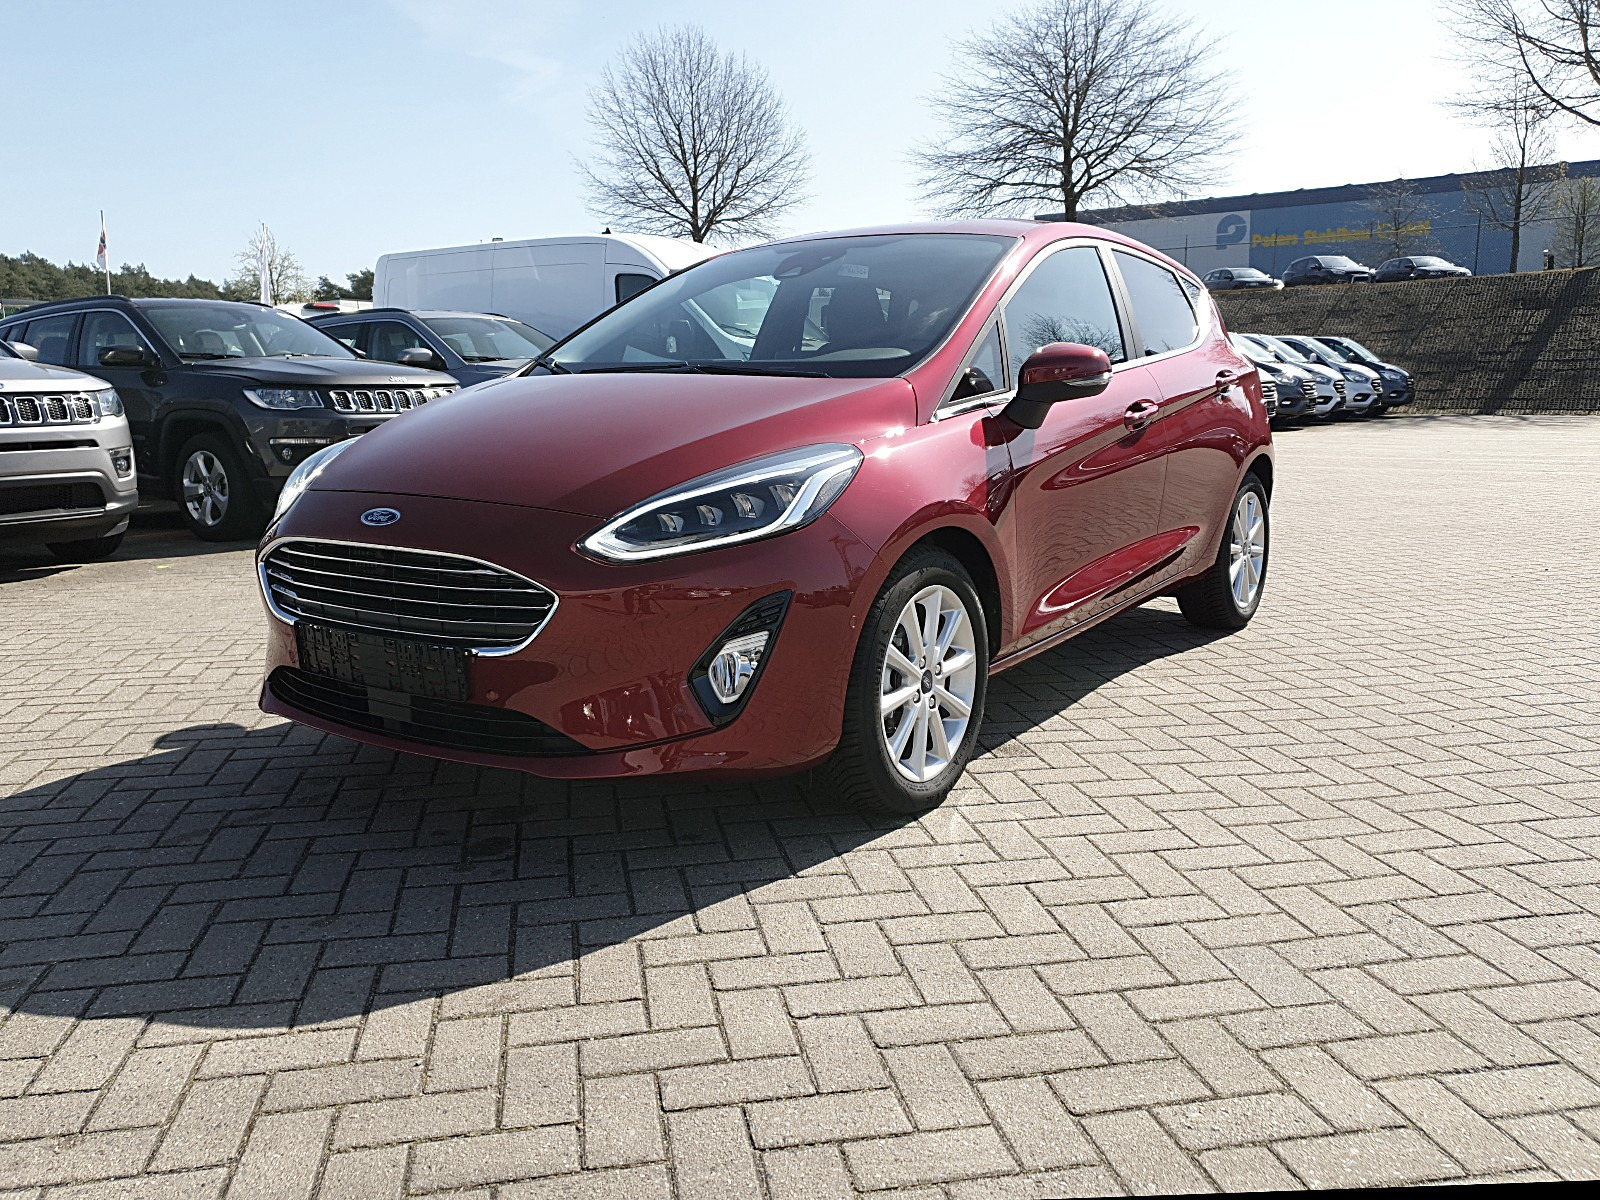 FORD FIESTA 1.0 100PS Ecoboost Automatik Titanium 5-Türig Voll-LED Klimaauto Autosoft BV, Enschede